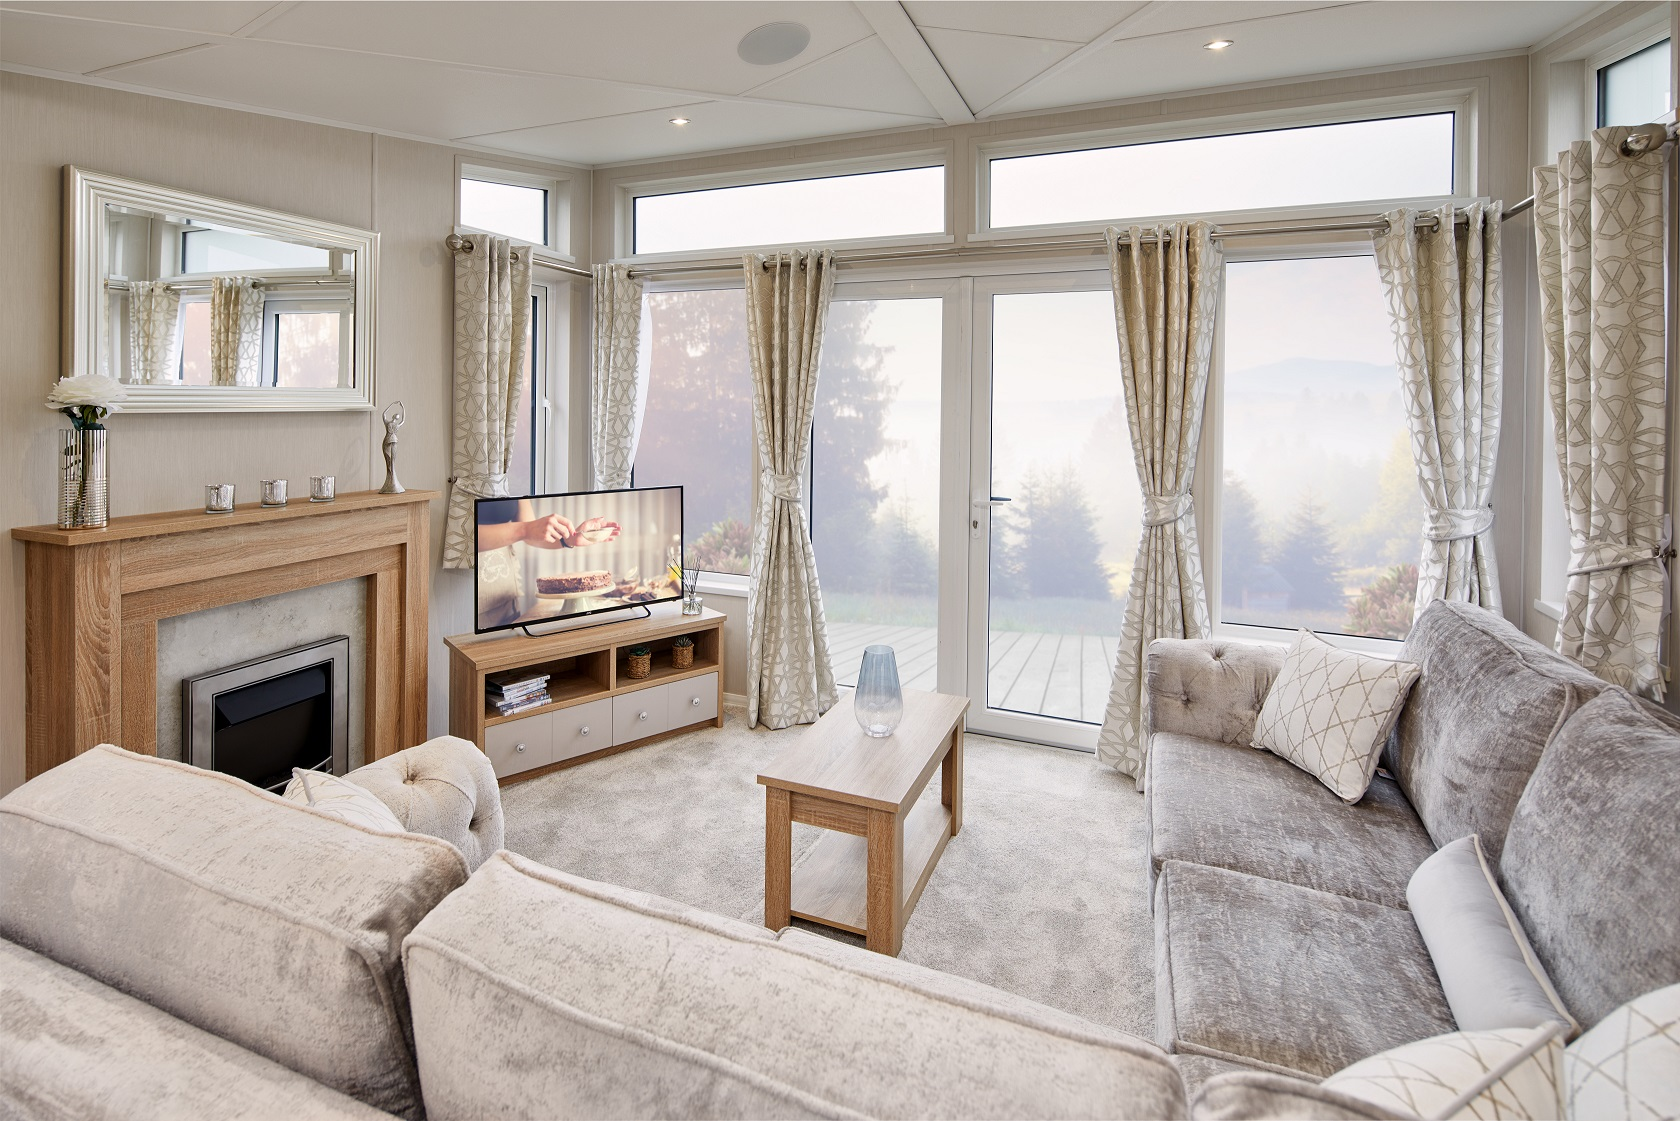 Willerby Vogue Classique - 13 foot - 2 Bedrooms: New Static Caravans and Holiday Homes for Sale, Available to Order Image 2